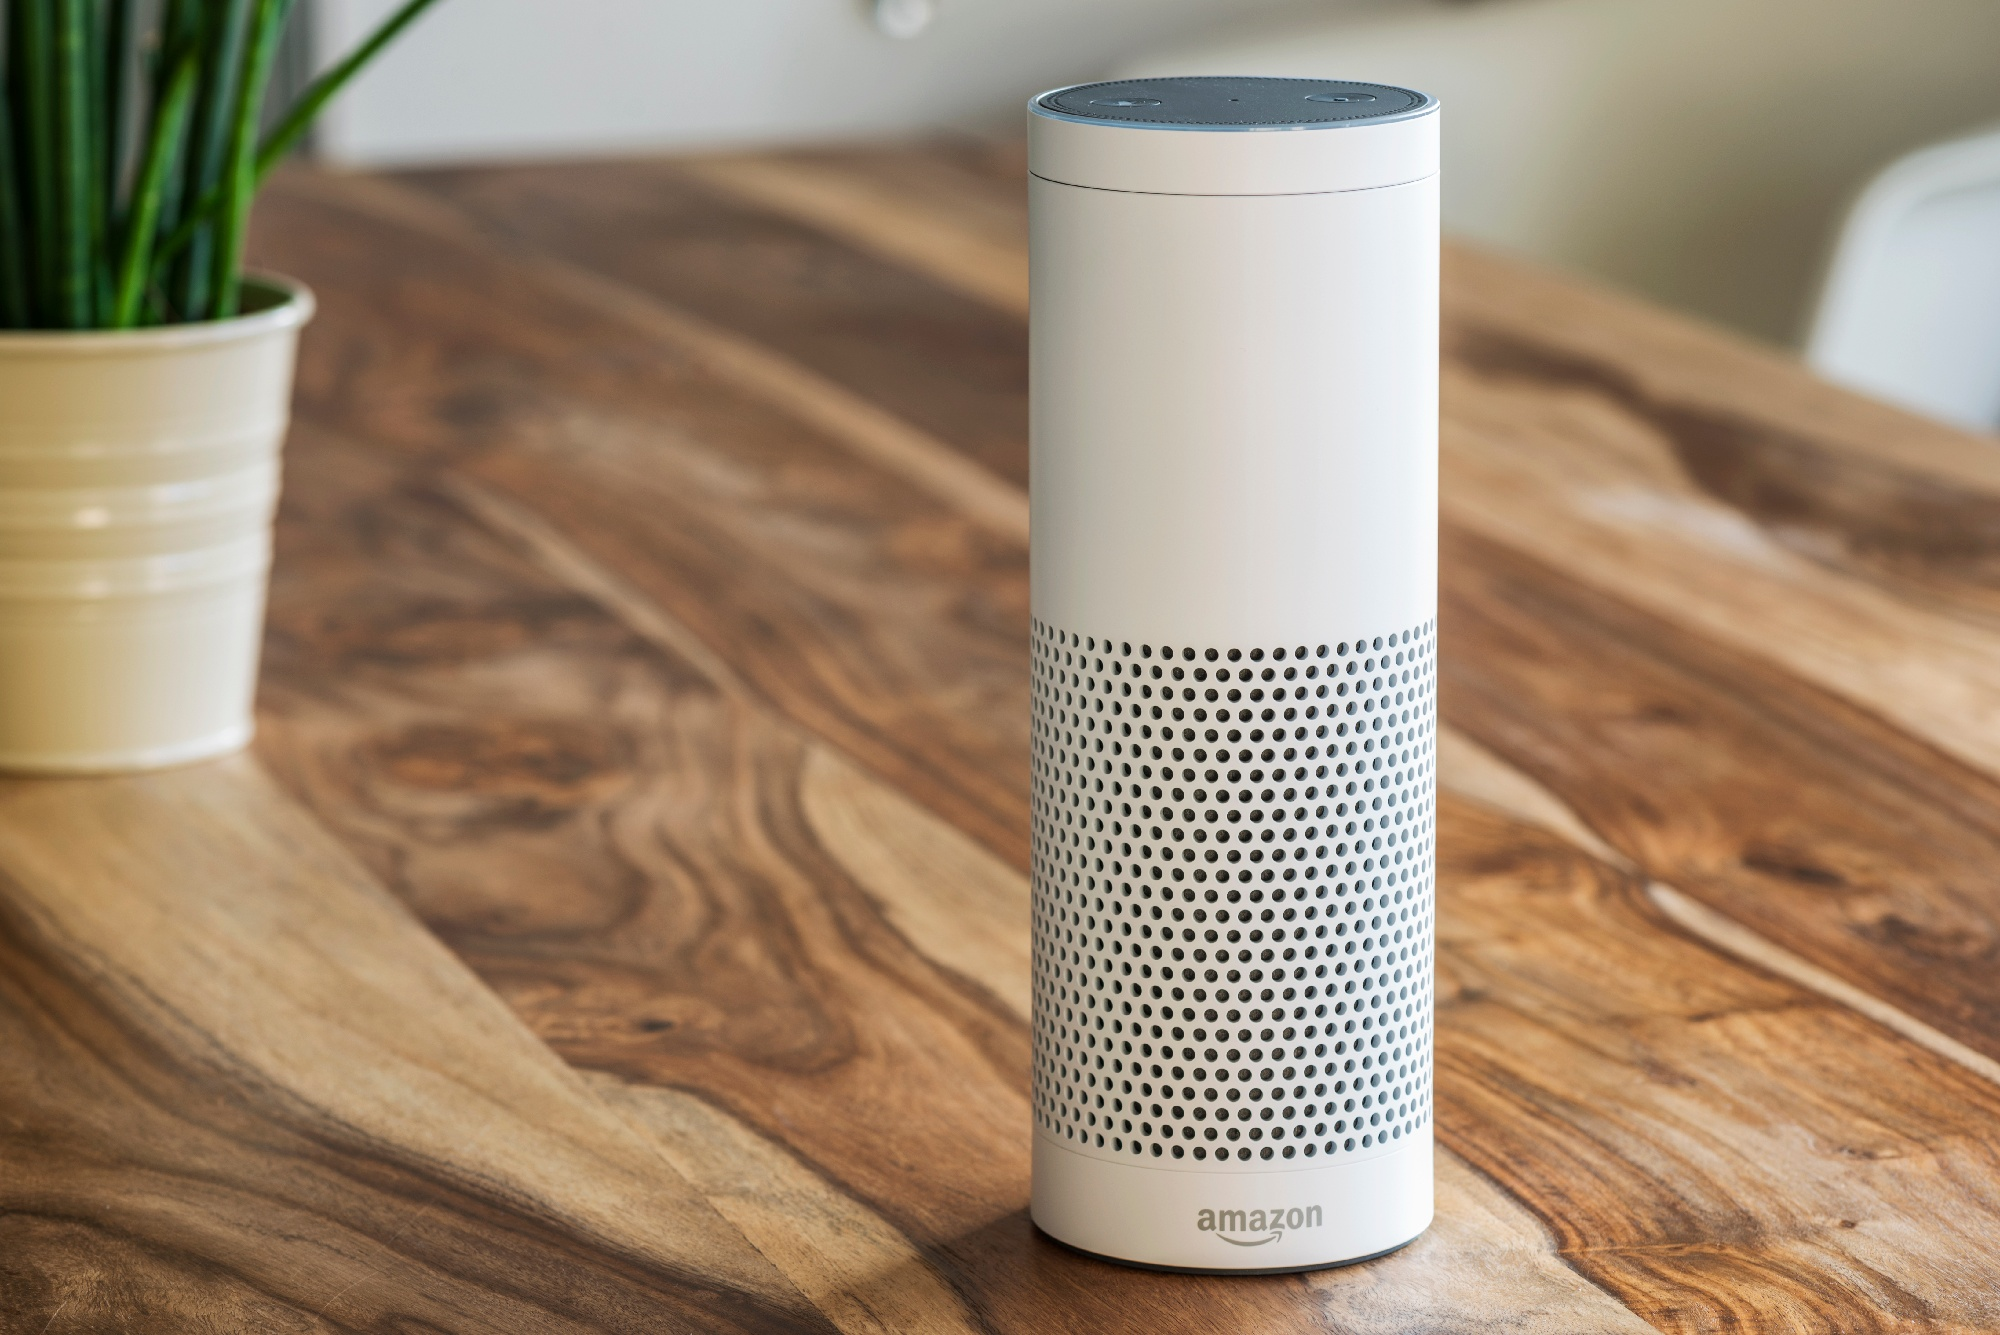 Amazon Alexa skills for kitchen